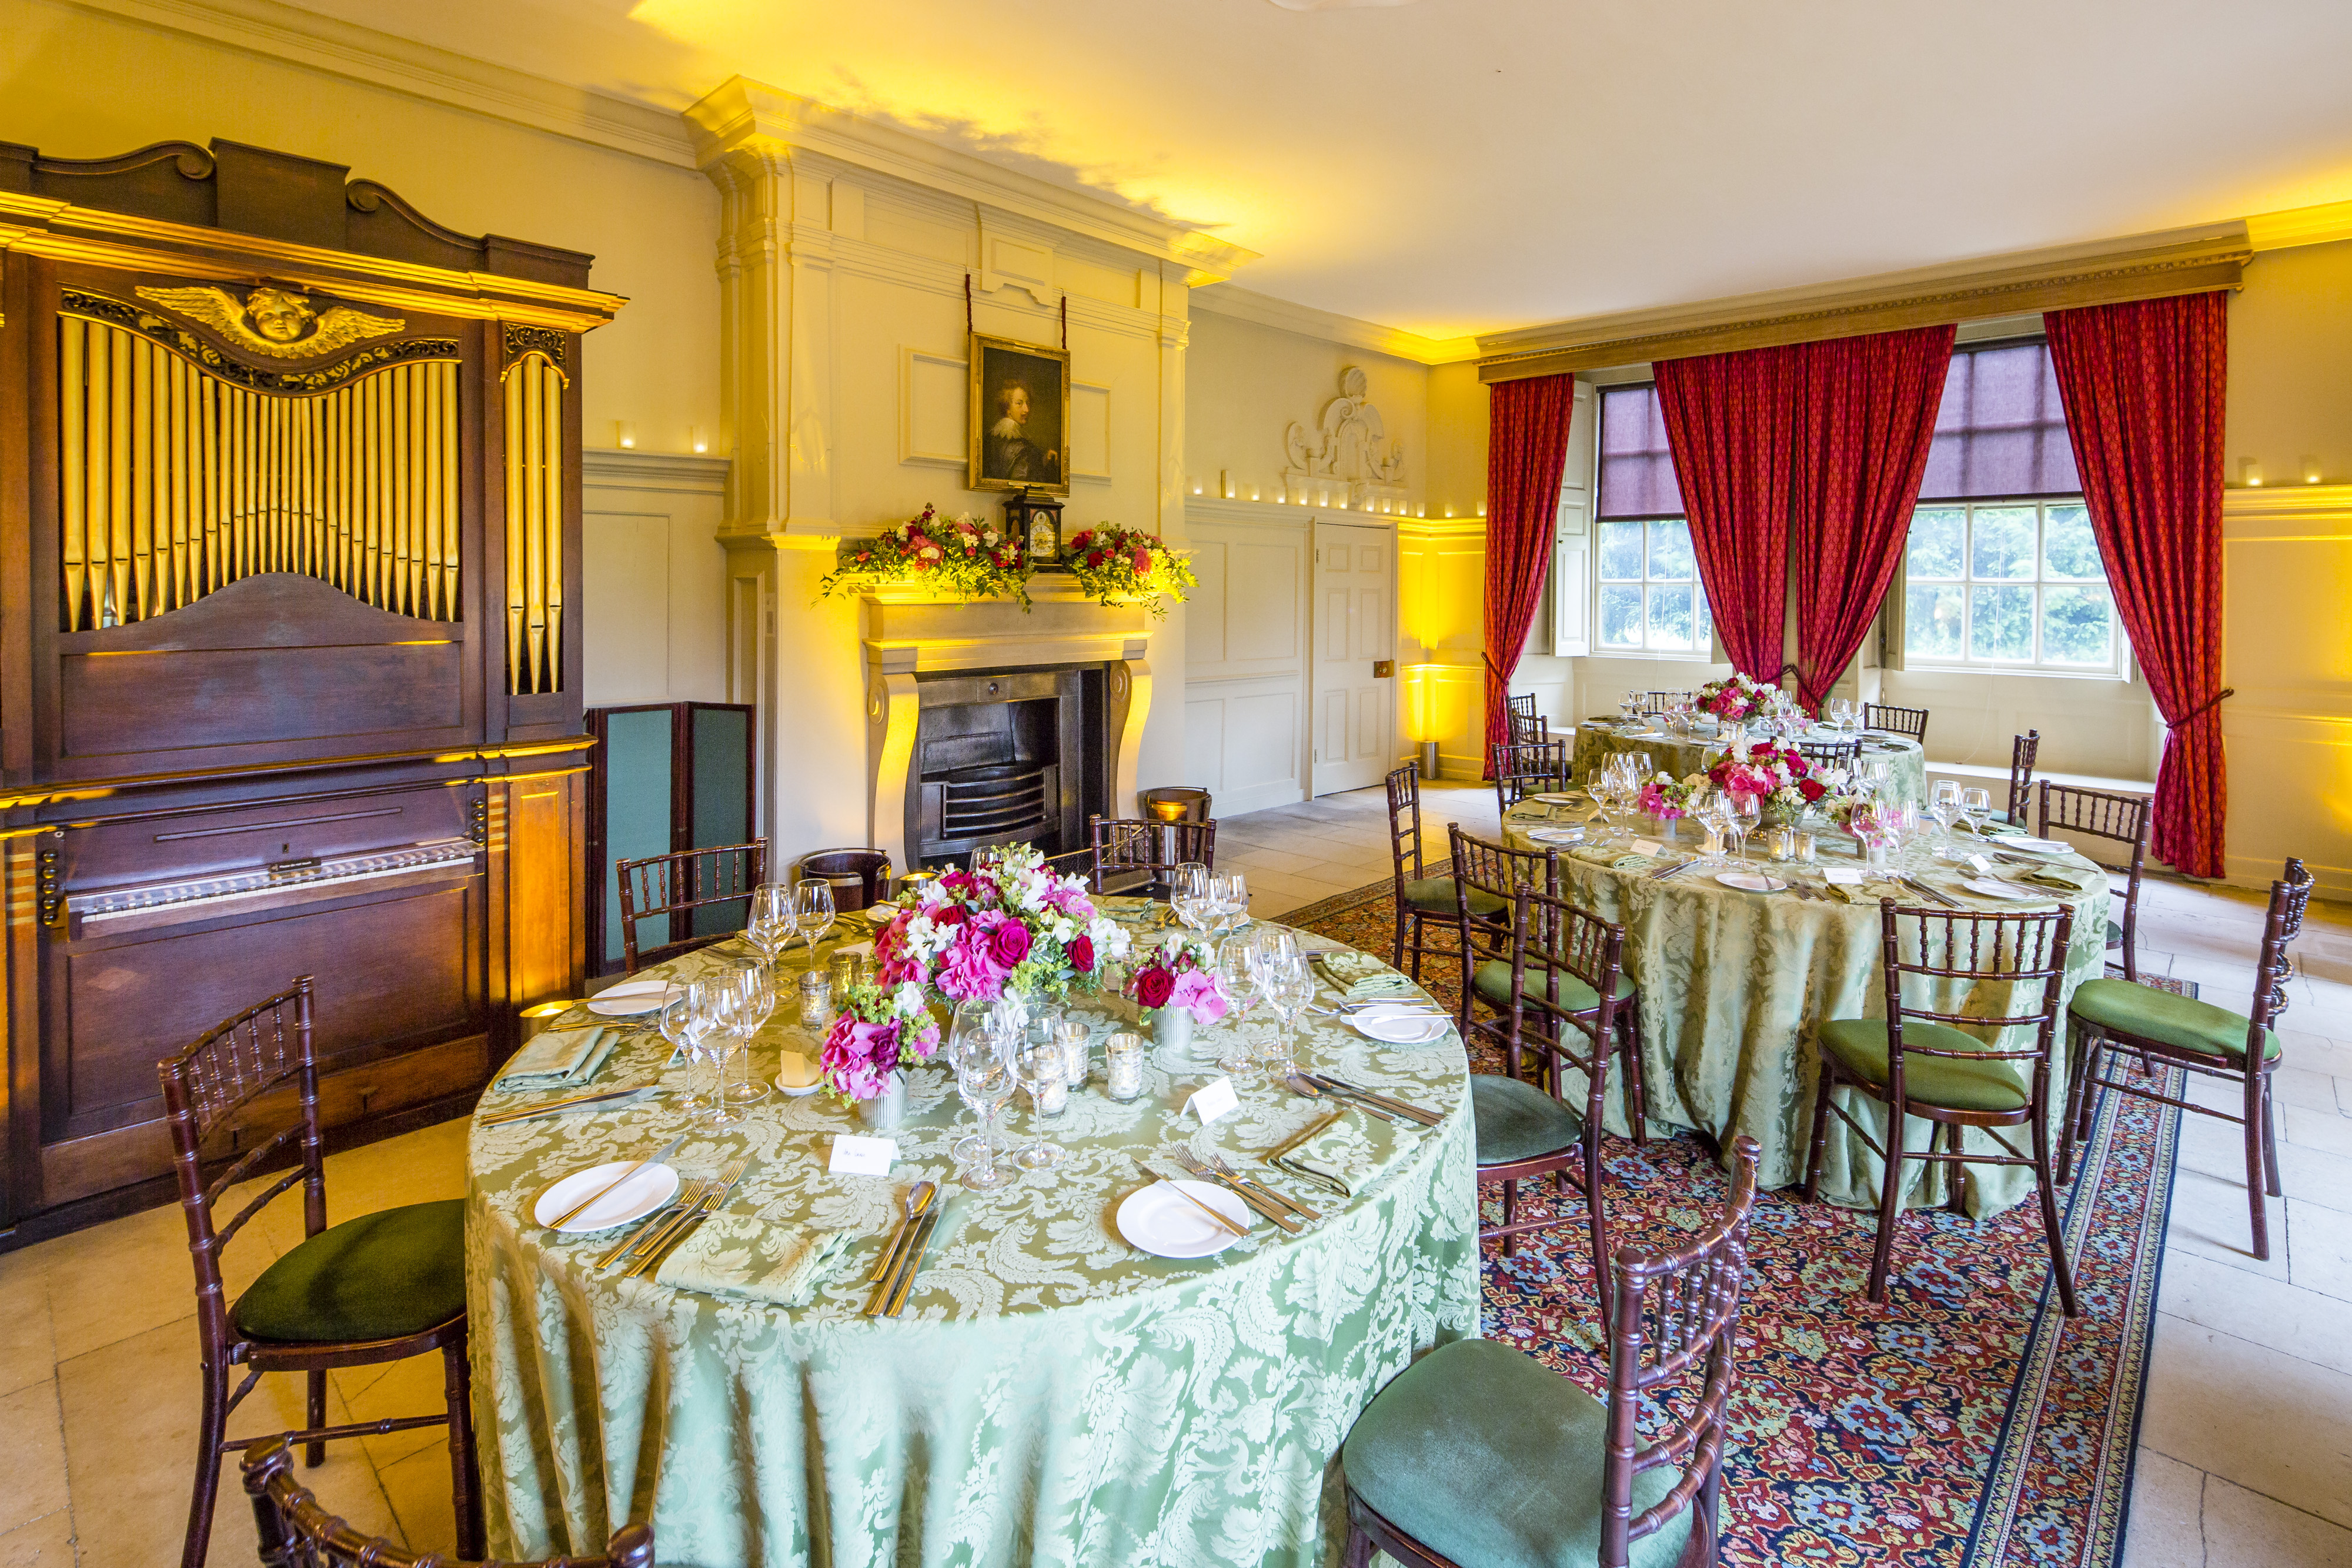 Kew Palace - The King's Dining Room